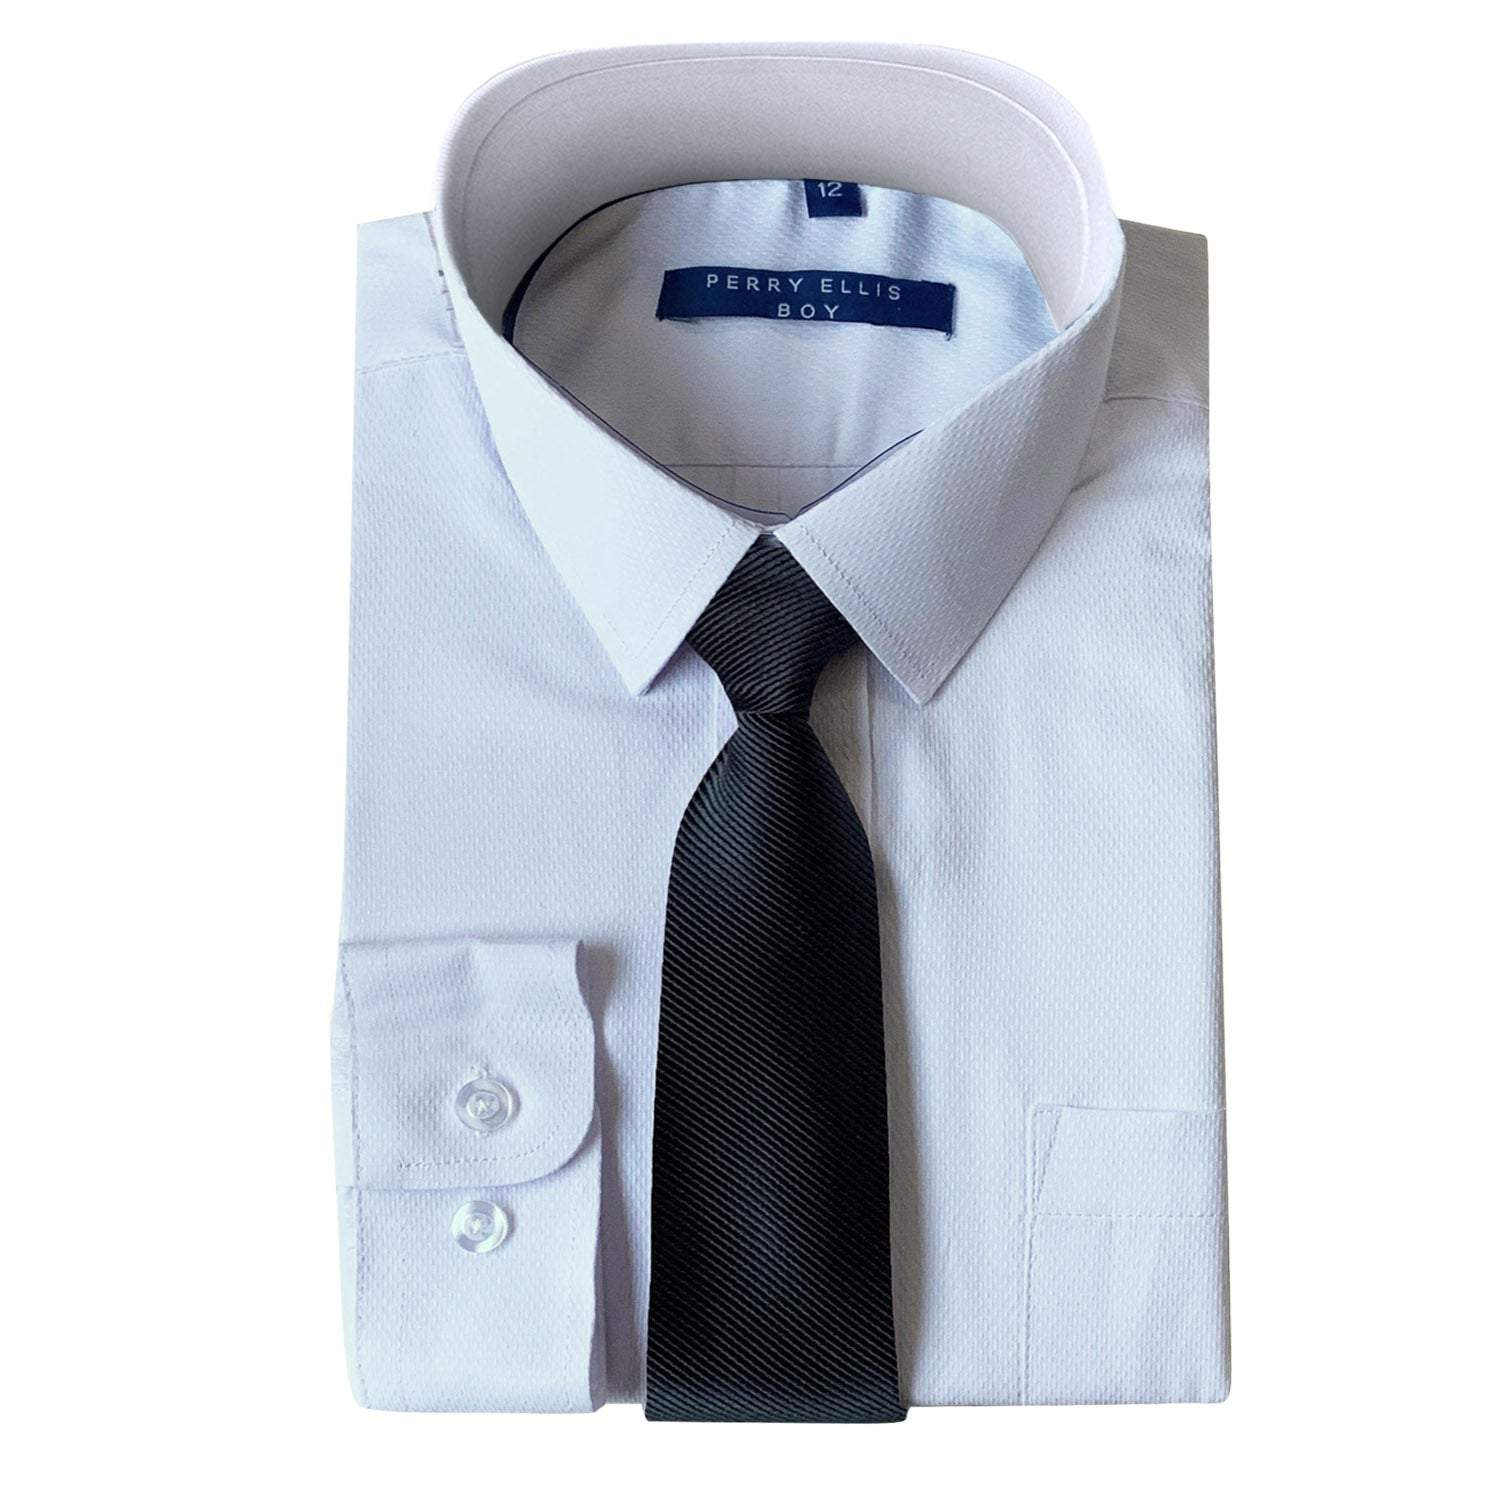 Perry Ellis Boys Dress Shirts w Mid Grey Tie Solid Shirts w Colored Tie